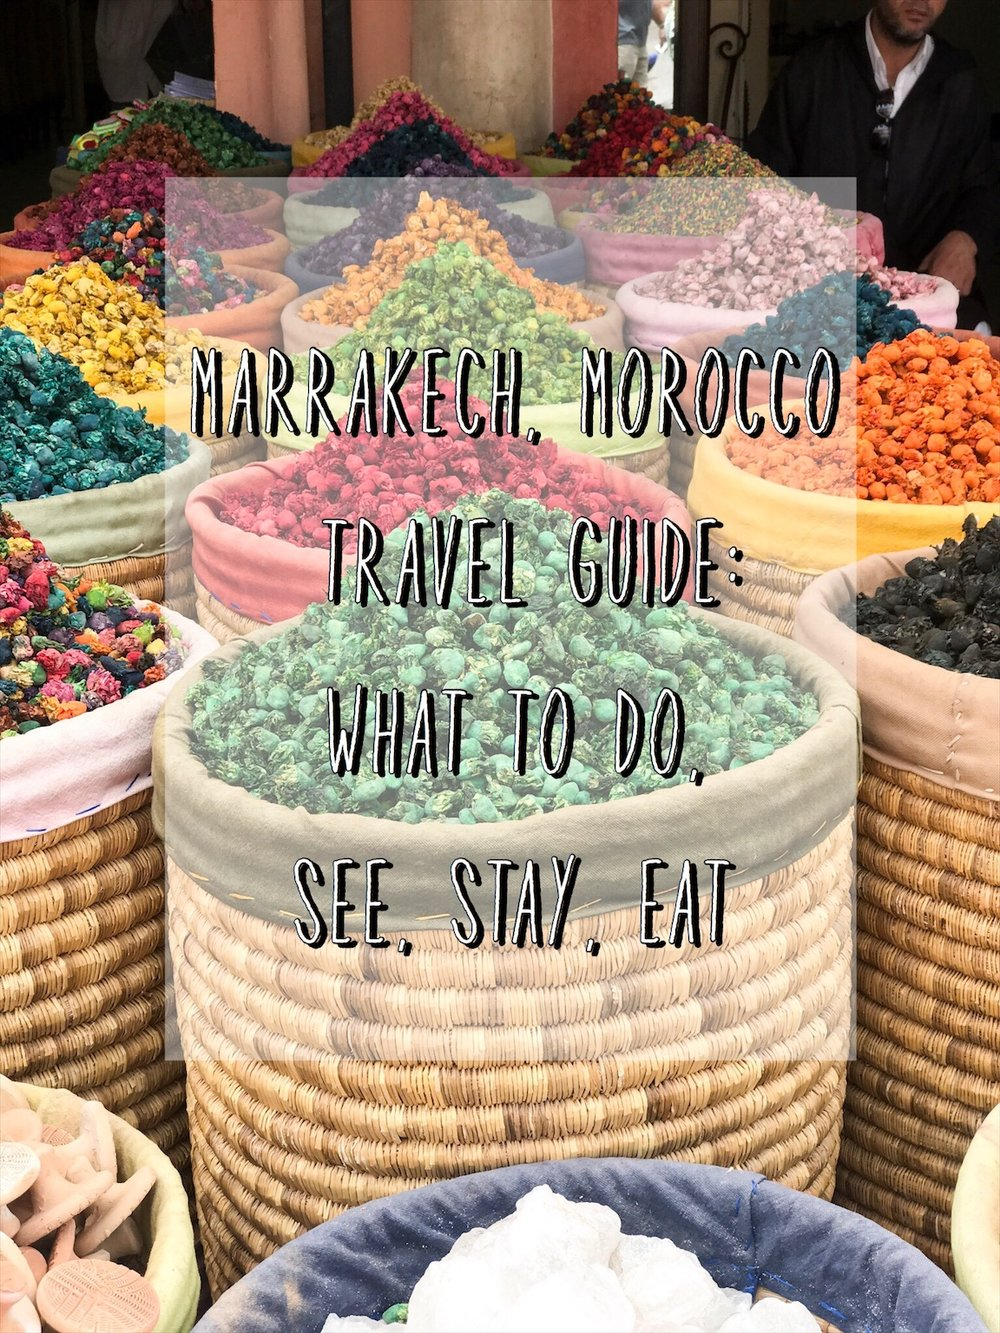 Marrakech Travel Guide: what do, eat, see, wear, sleep.